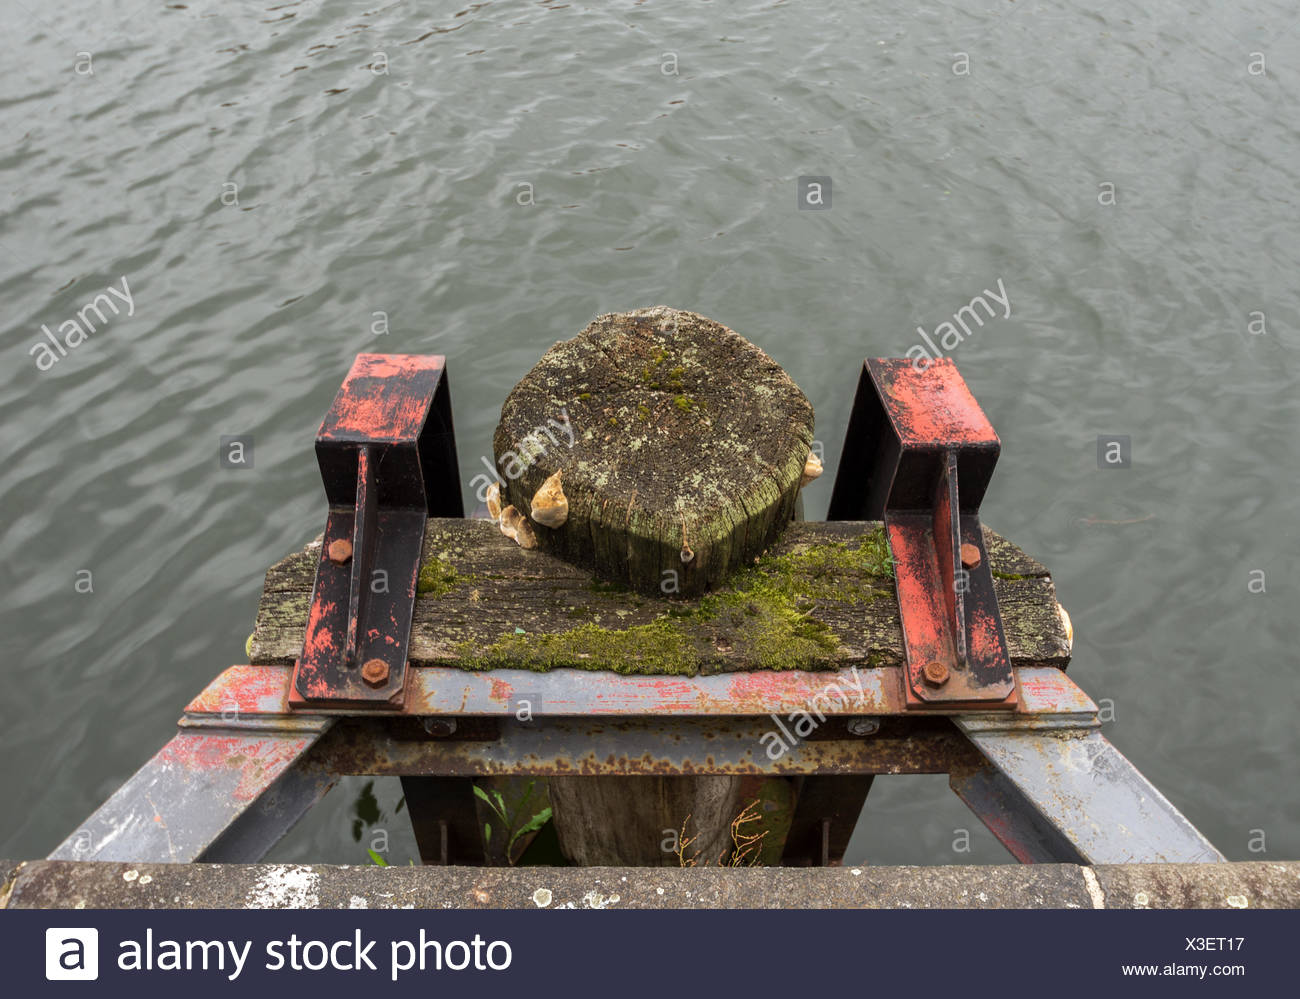 holder for boats - Stock Image